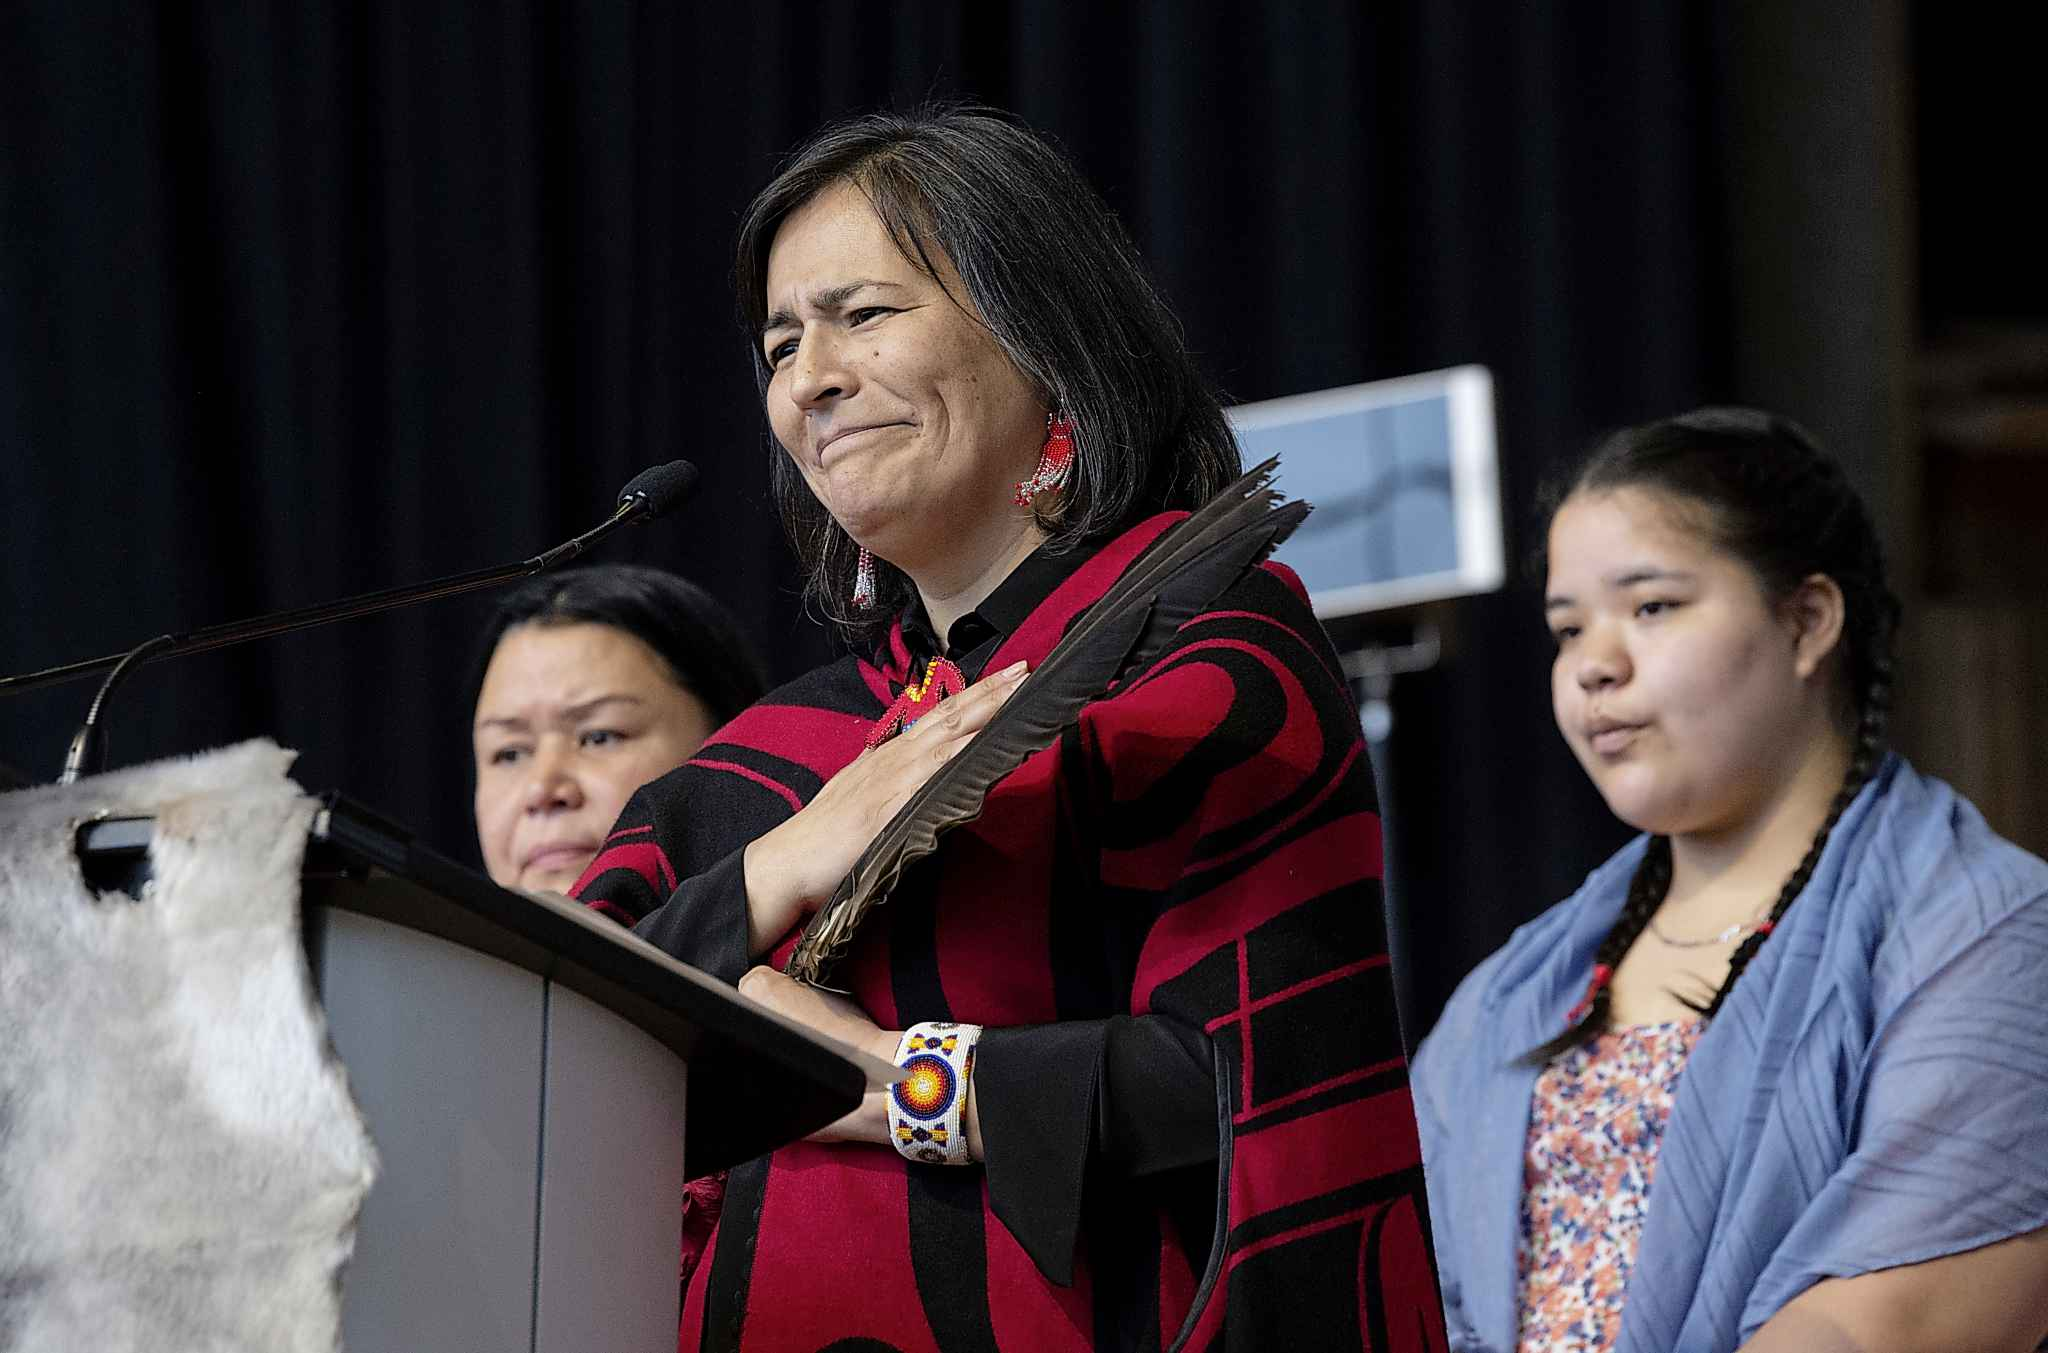 Commissioner Michele Audette speaks during ceremonies marking the release of the Missing and Murdered Indigenous Women report in Gatineau, Monday. THE CANADIAN PRESS/Adrian Wyld